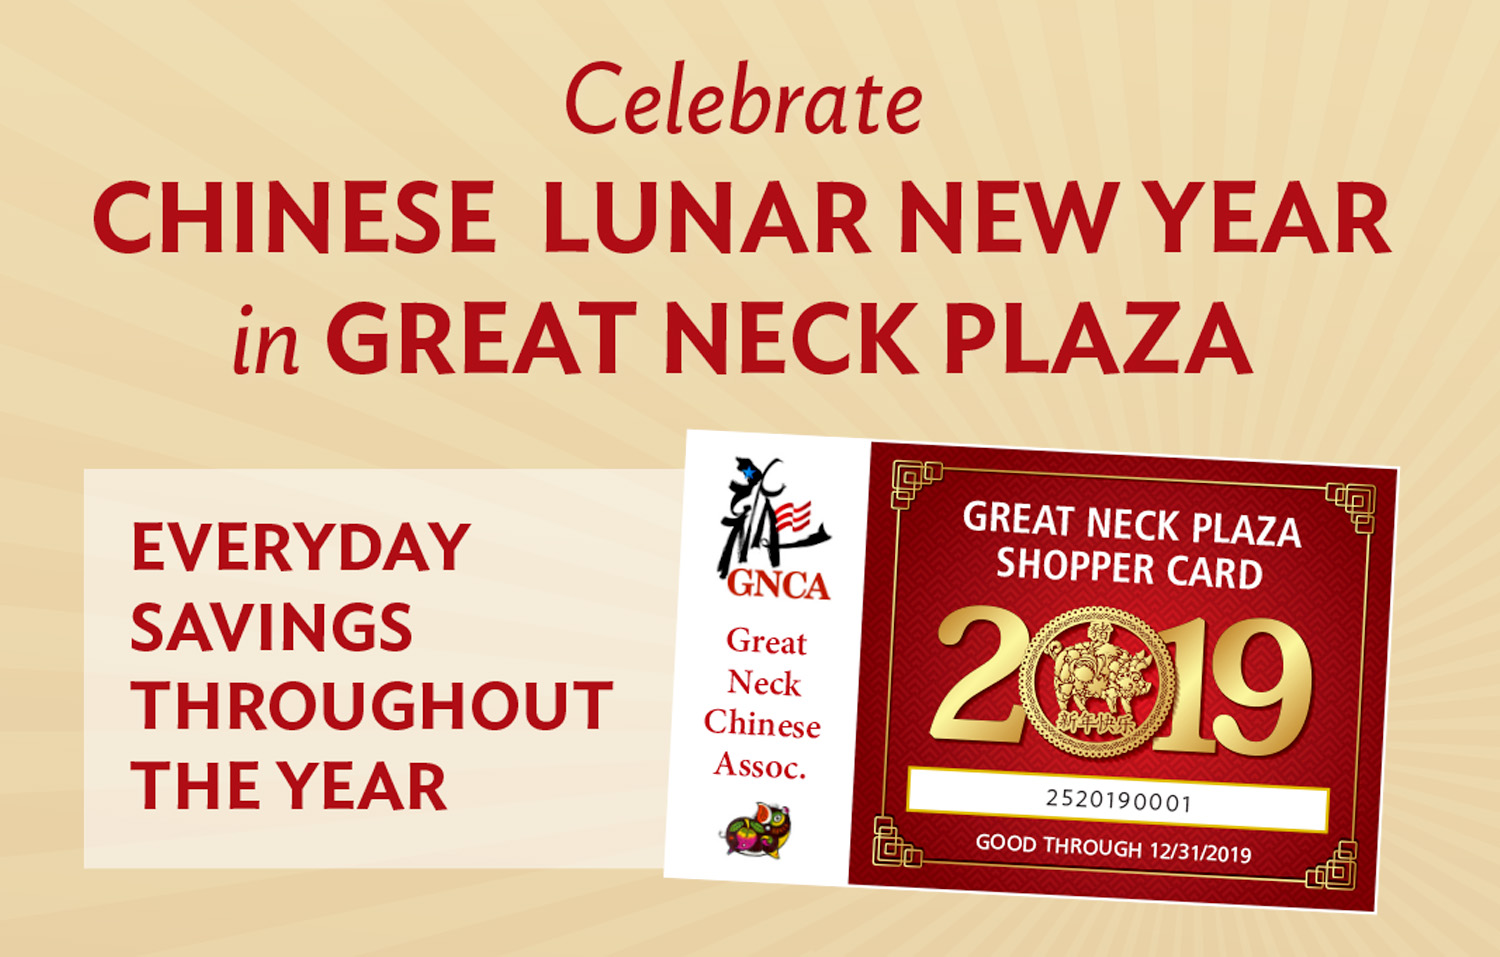 Chinese Lunar New Year - Shopper Card for Great Neck Plaza